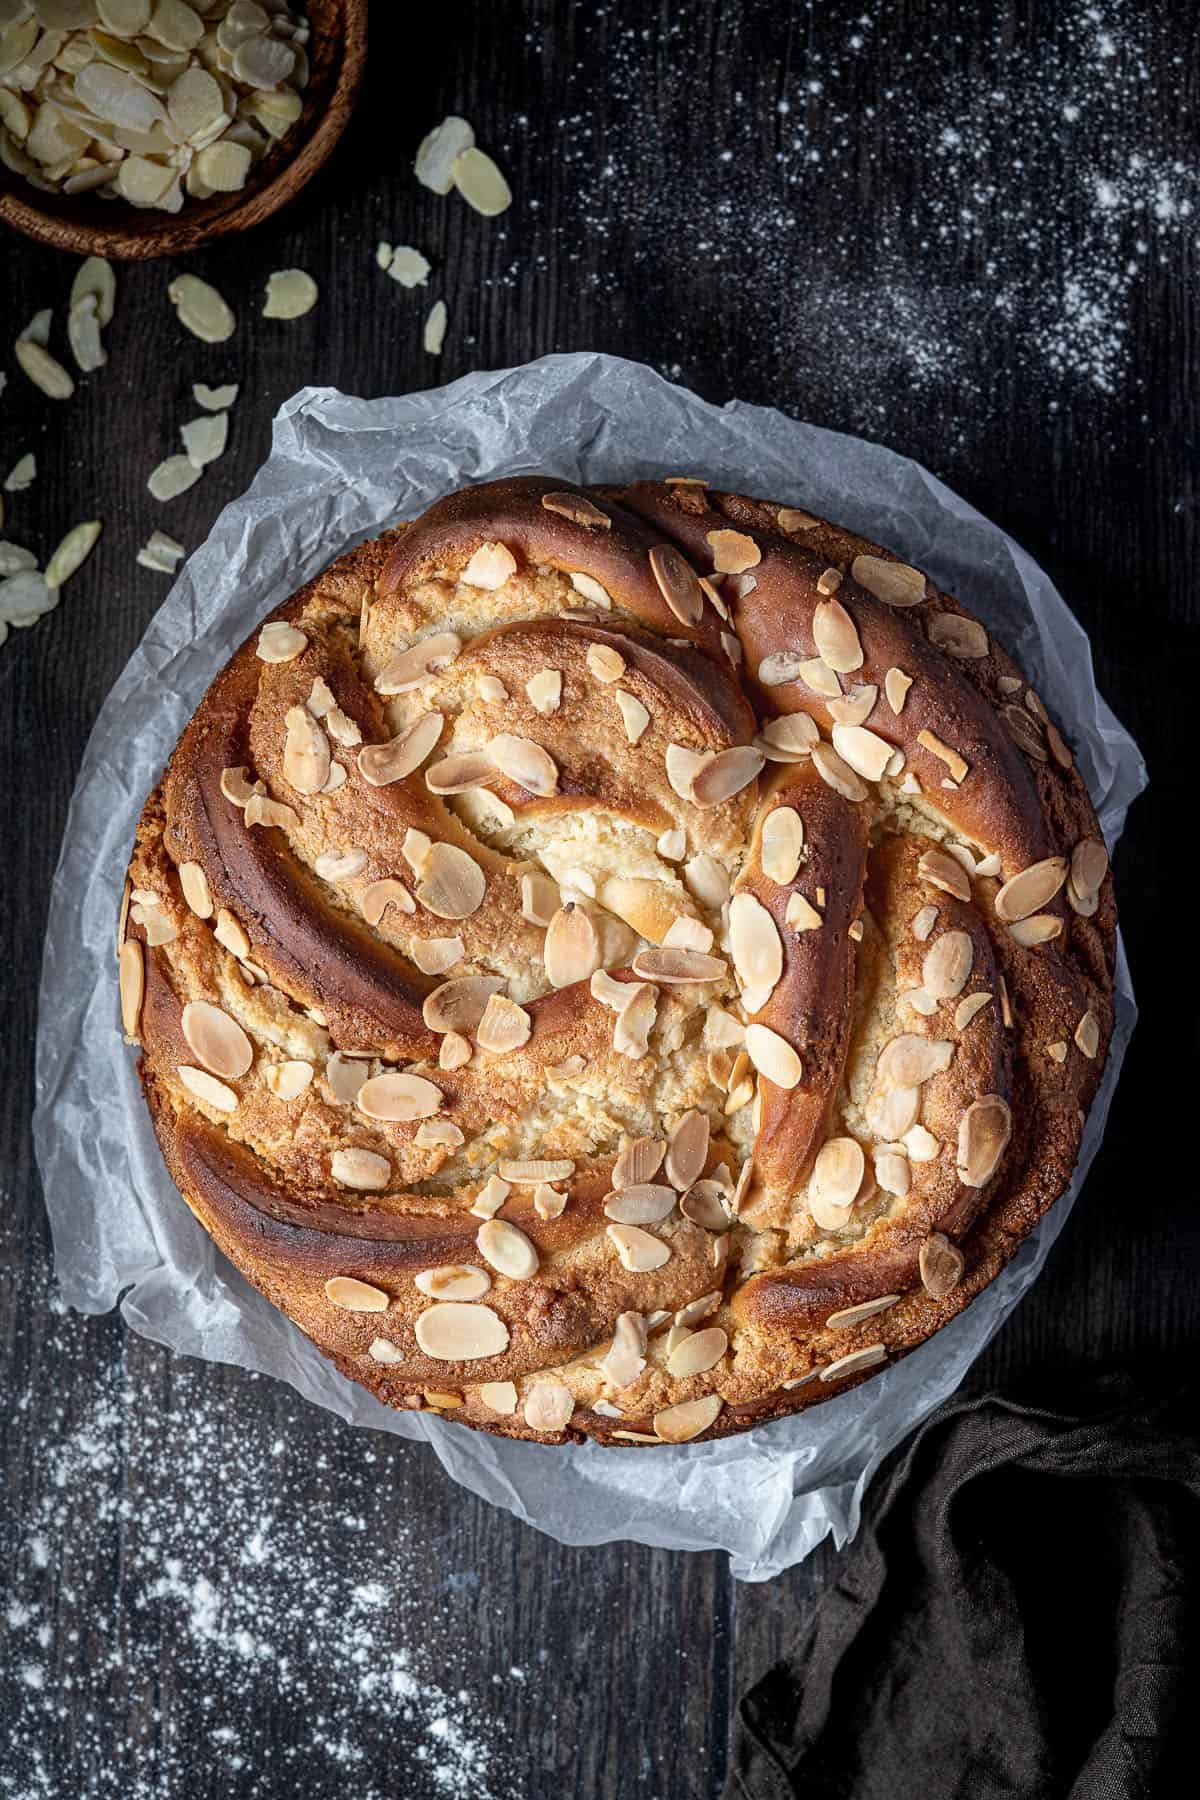 Almond bread twist on white baking parchment on a wooden table with a bowl of flaked almonds.